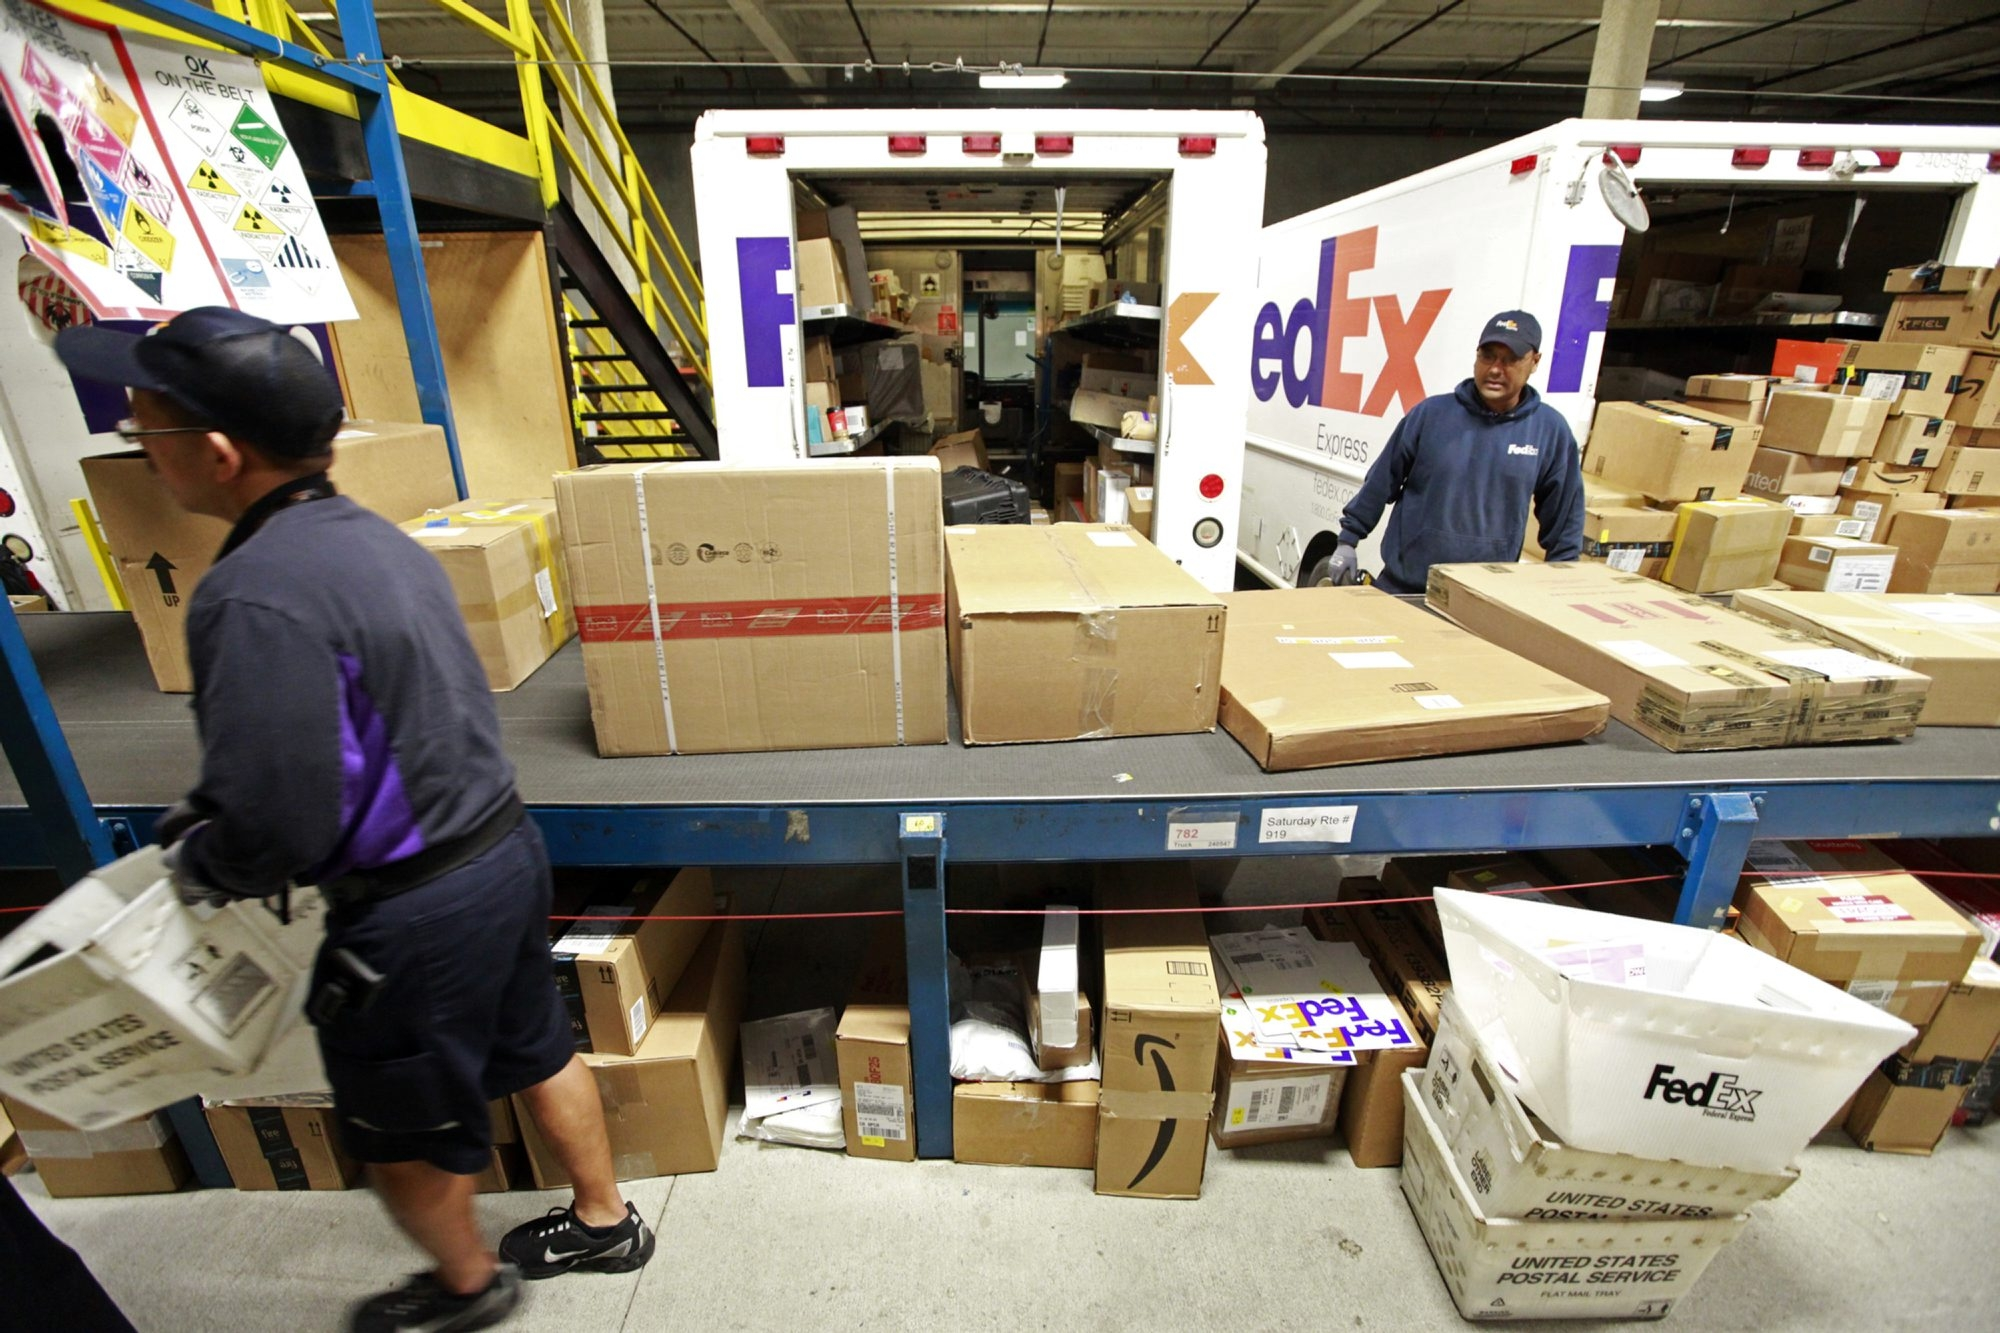 Workers at the FedEx facility in San Francisco watch for their designated packages, moving down a conveyor belt, to be loaded for delivery on Monday, the busiest shipping day of the year. Delivery services are hoping this season goes smoothly.